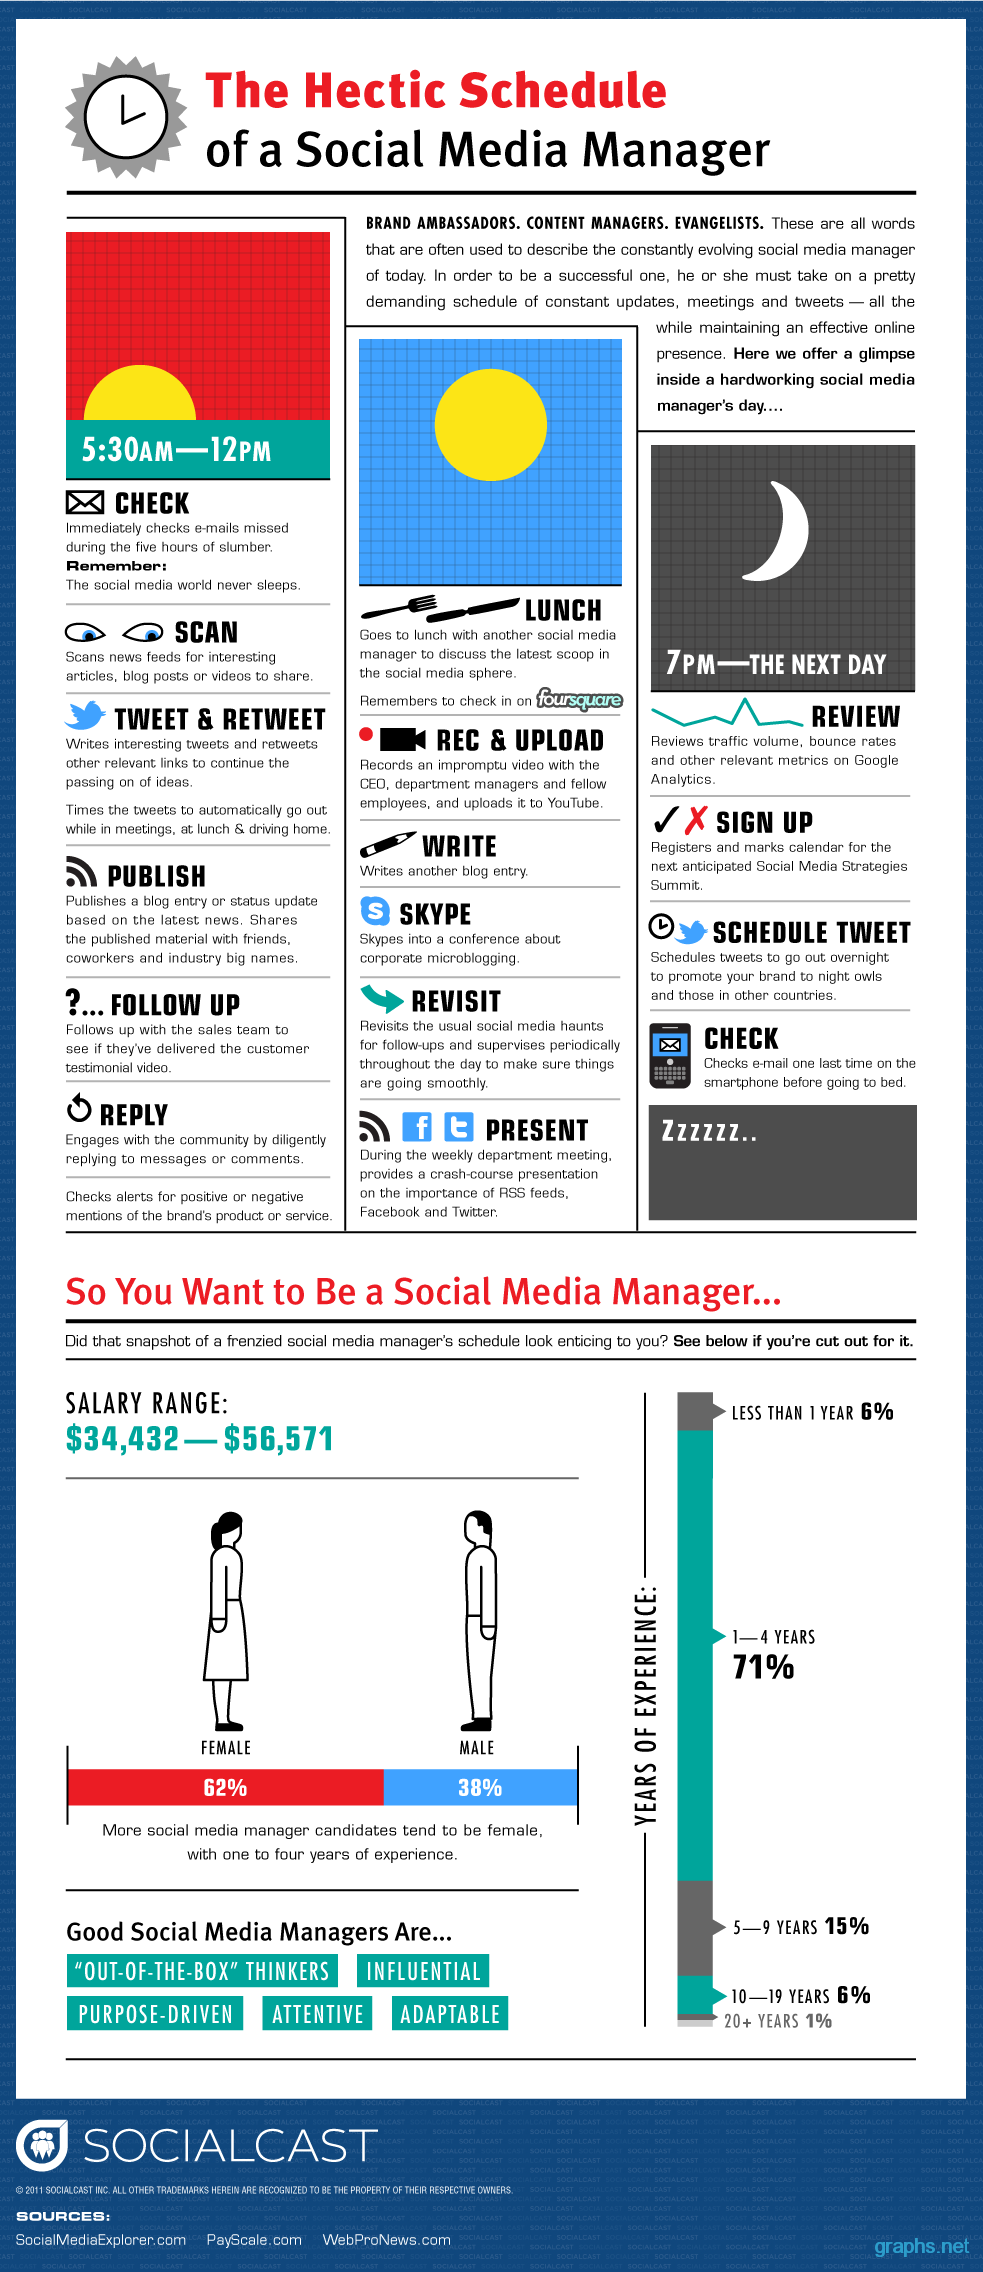 Schedule of a Social Media Manager